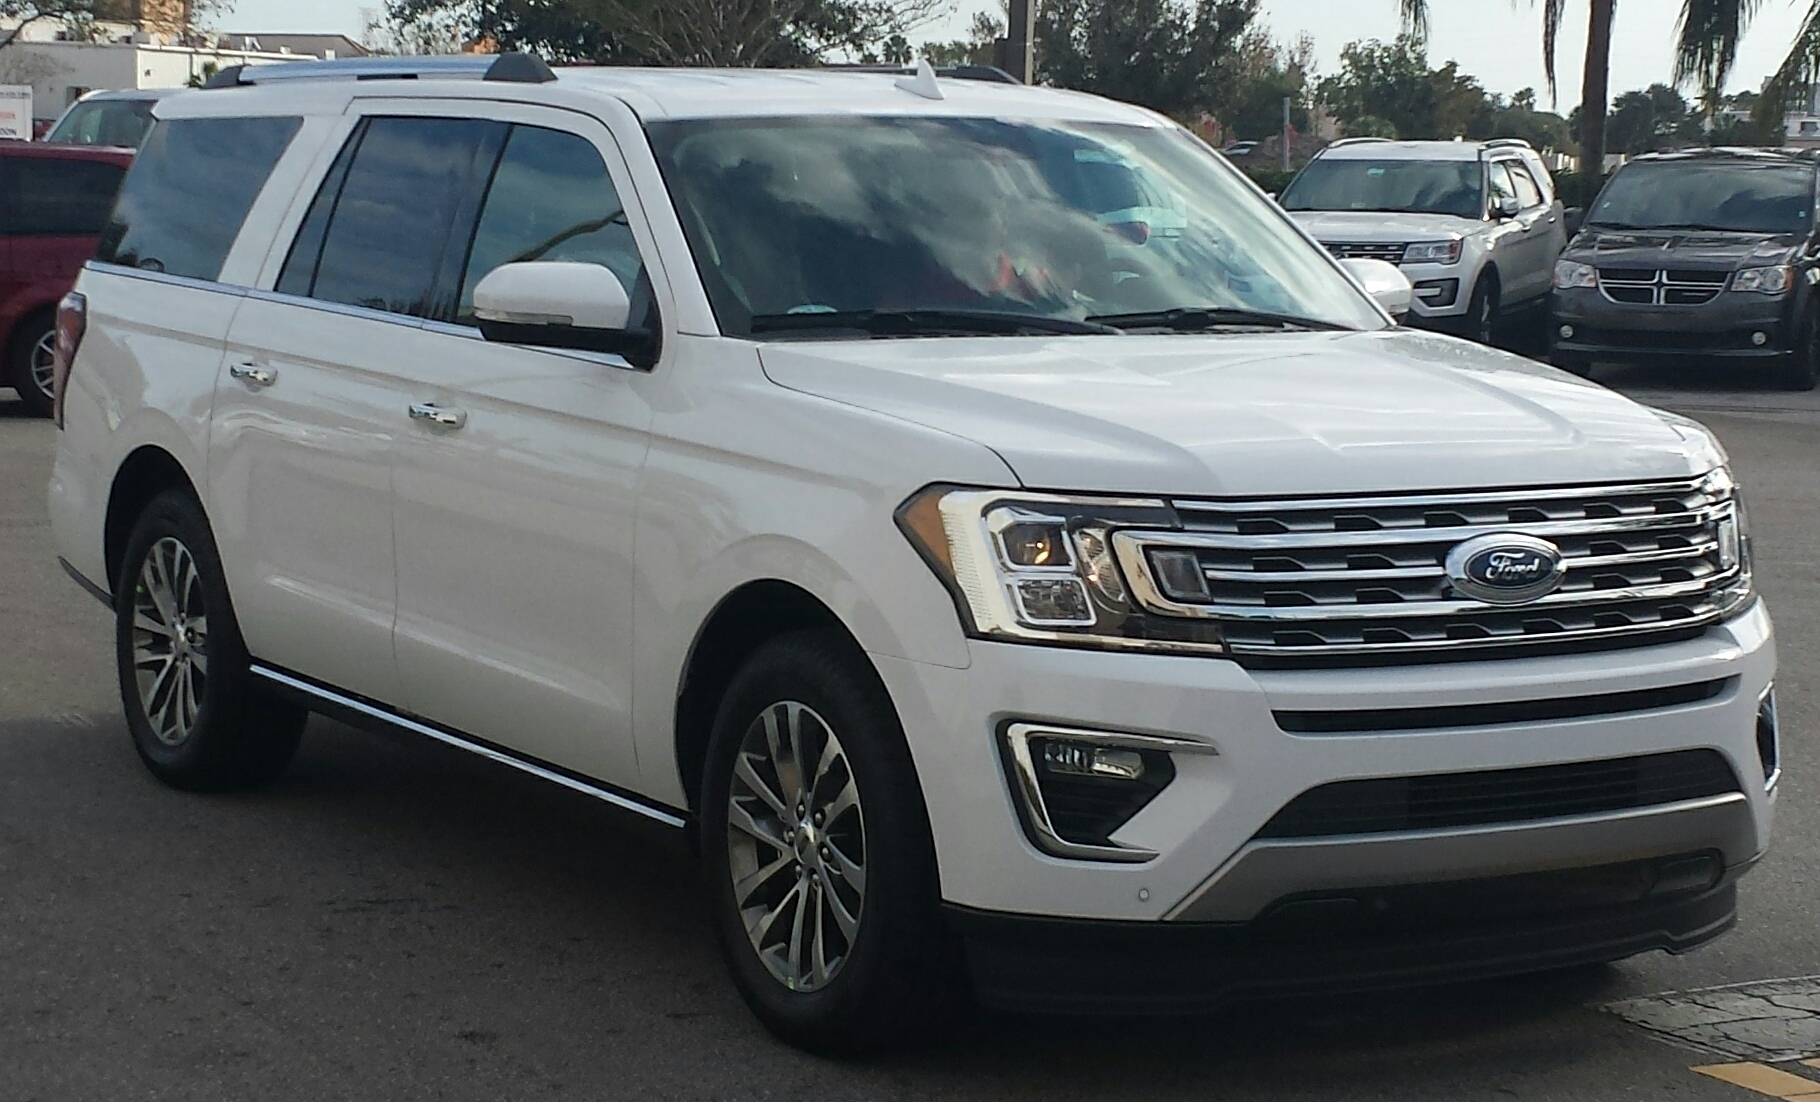 ford expedition danica patrick nascar real cars